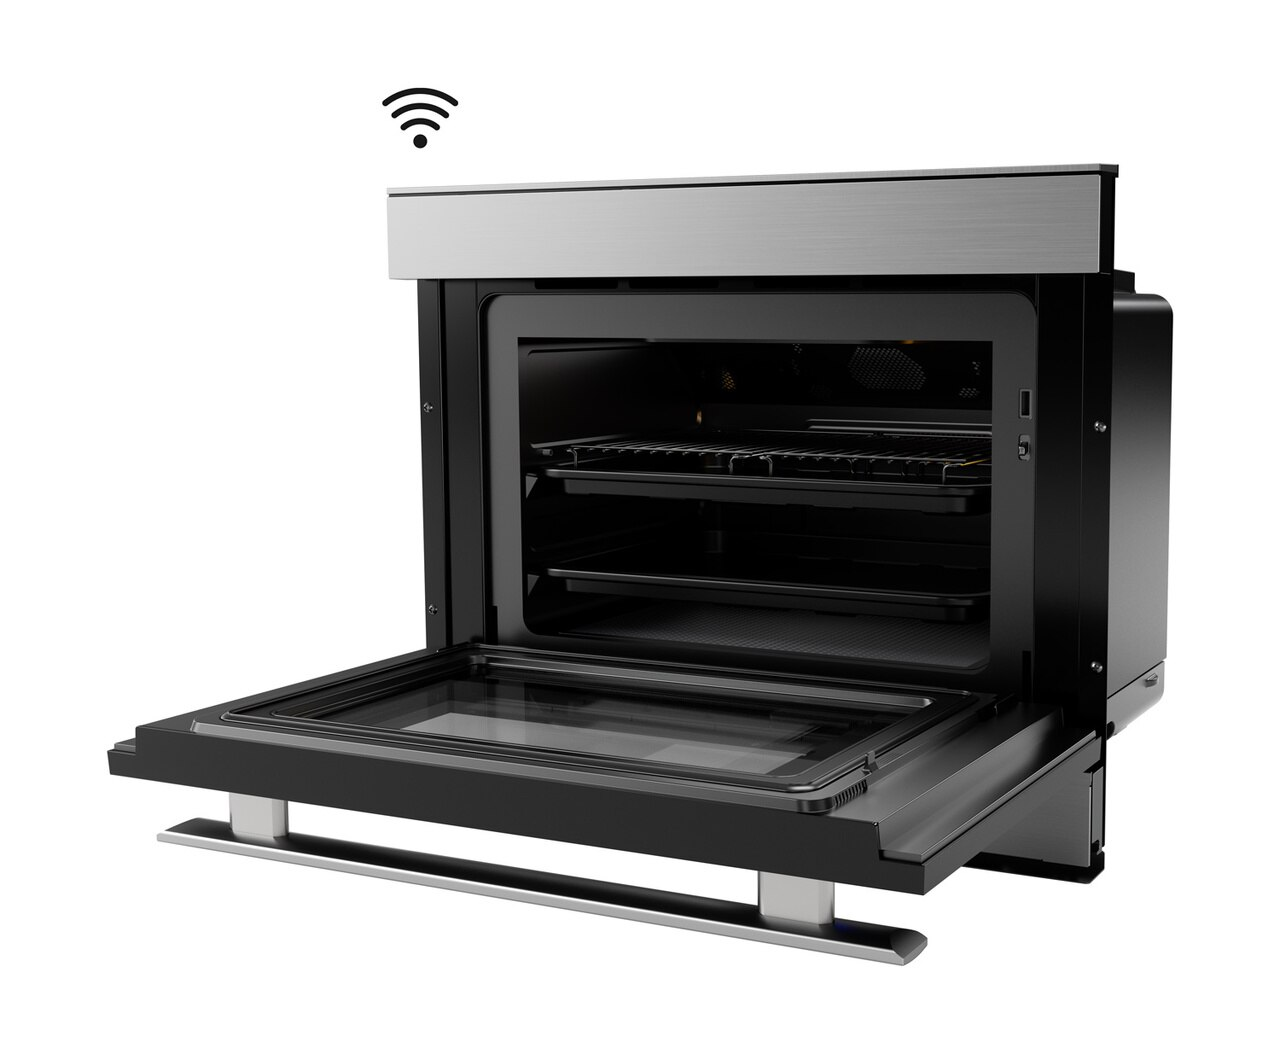 Left side view of the SuperSteam IoT Oven (SSC2489DS) with door open - Sharp's Superheated Steam Oven